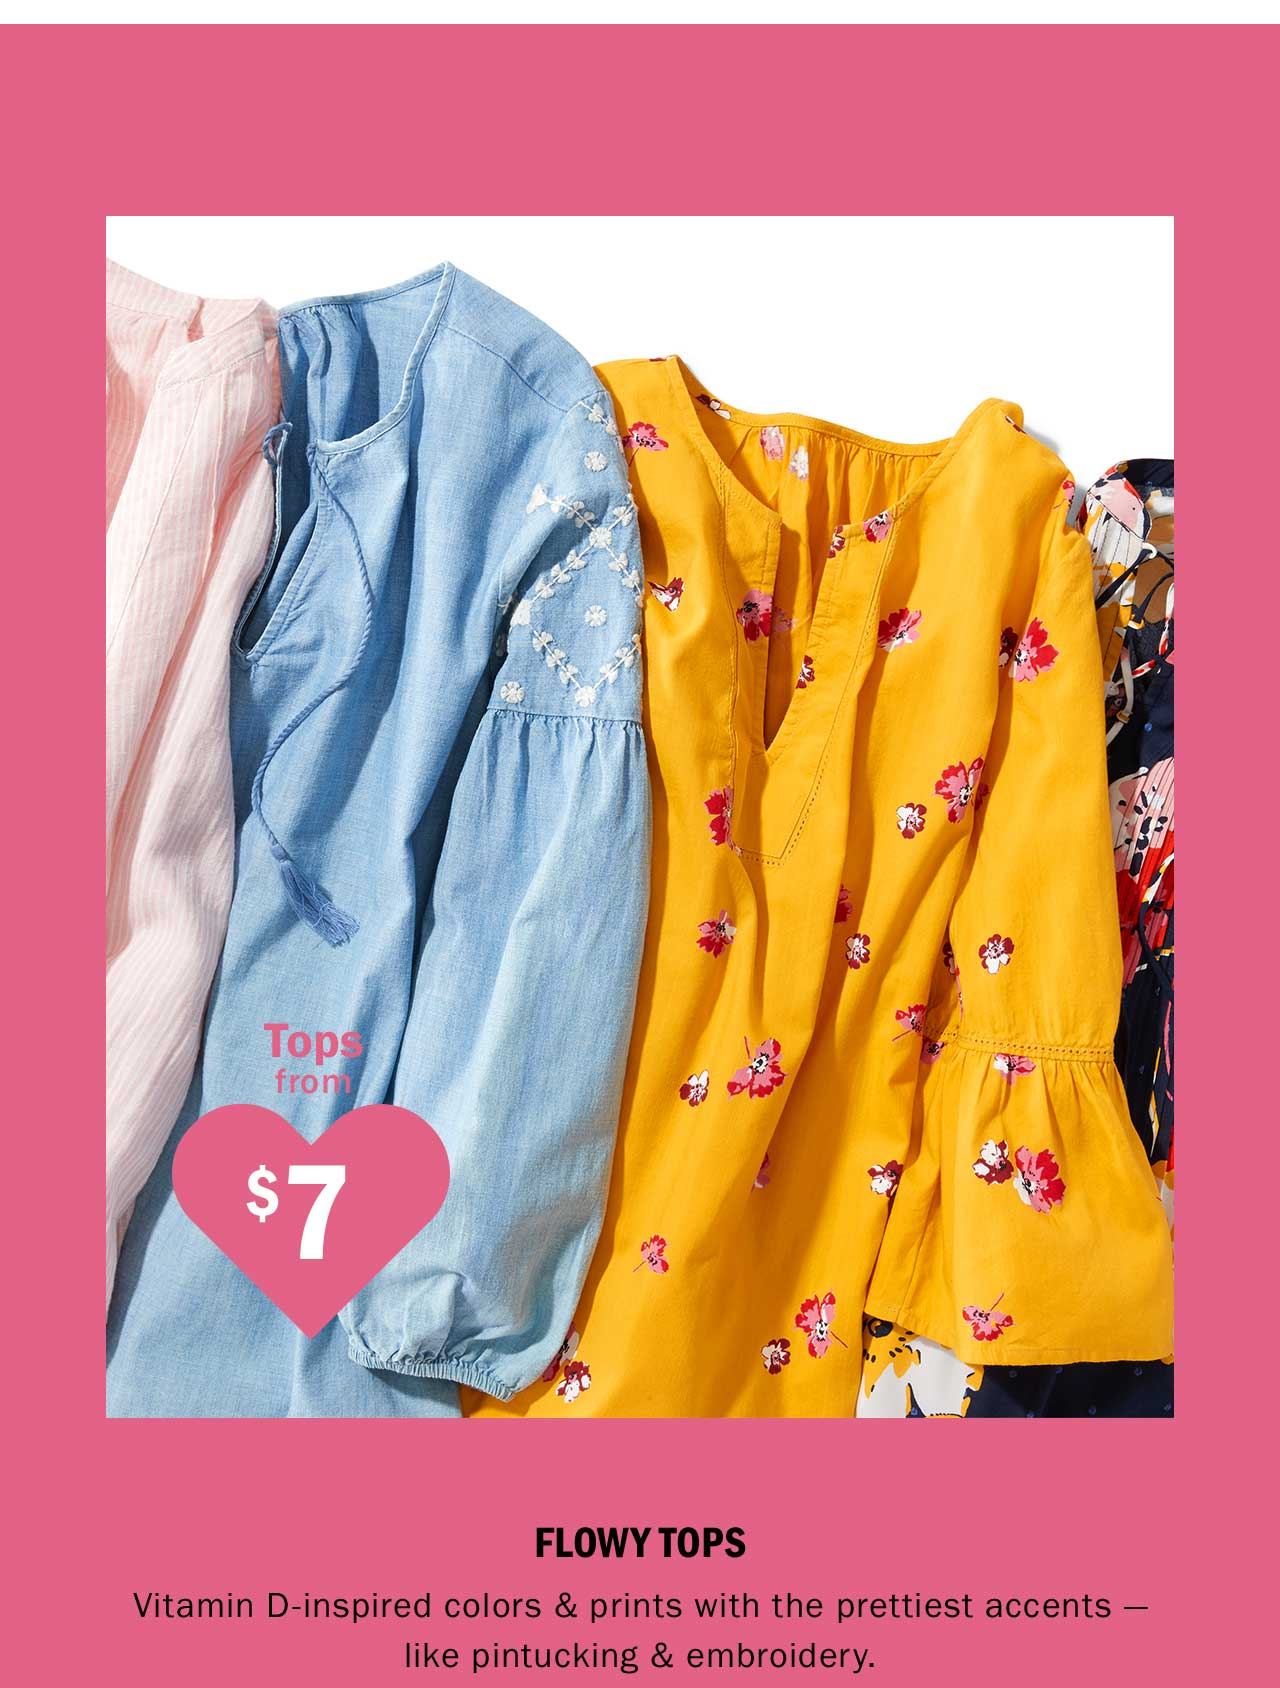 Tops from $7